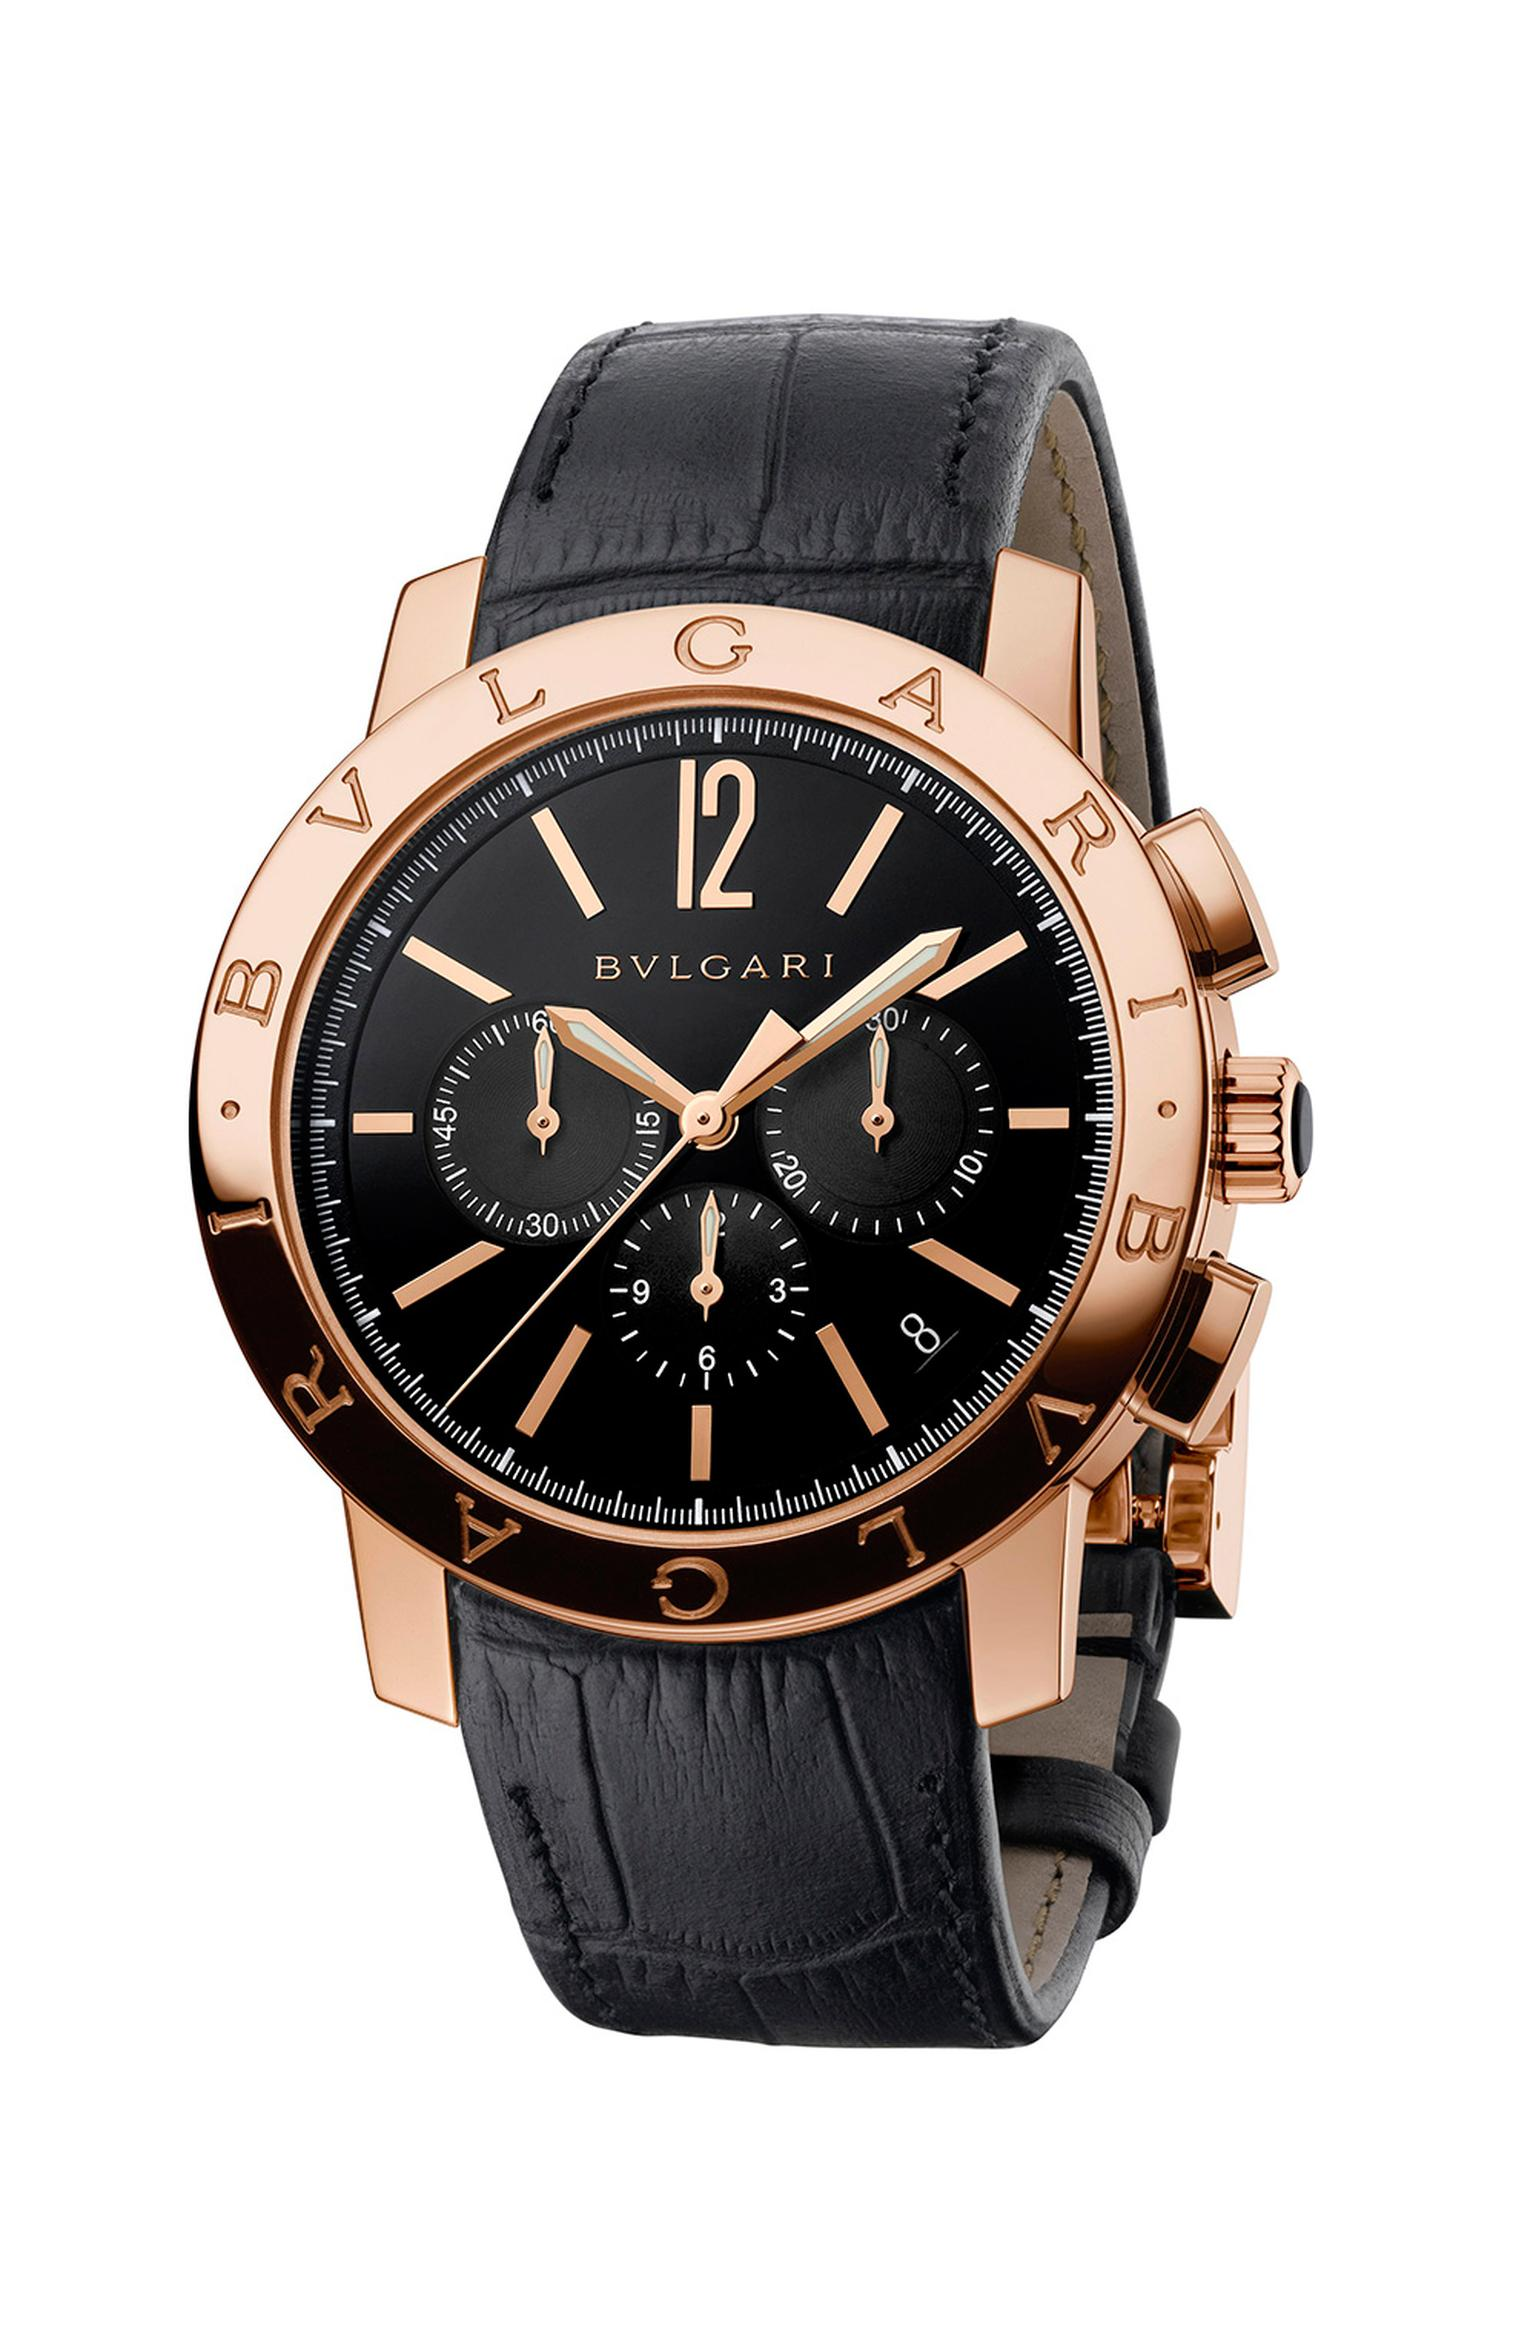 The Bulgari Bulgari Velocissimo watch in rose gold, as worn by Adrien Brody to the Golden Globes, is a high-frequency chronograph with a column wheel mechanism and a generous 50-hour power reserve.